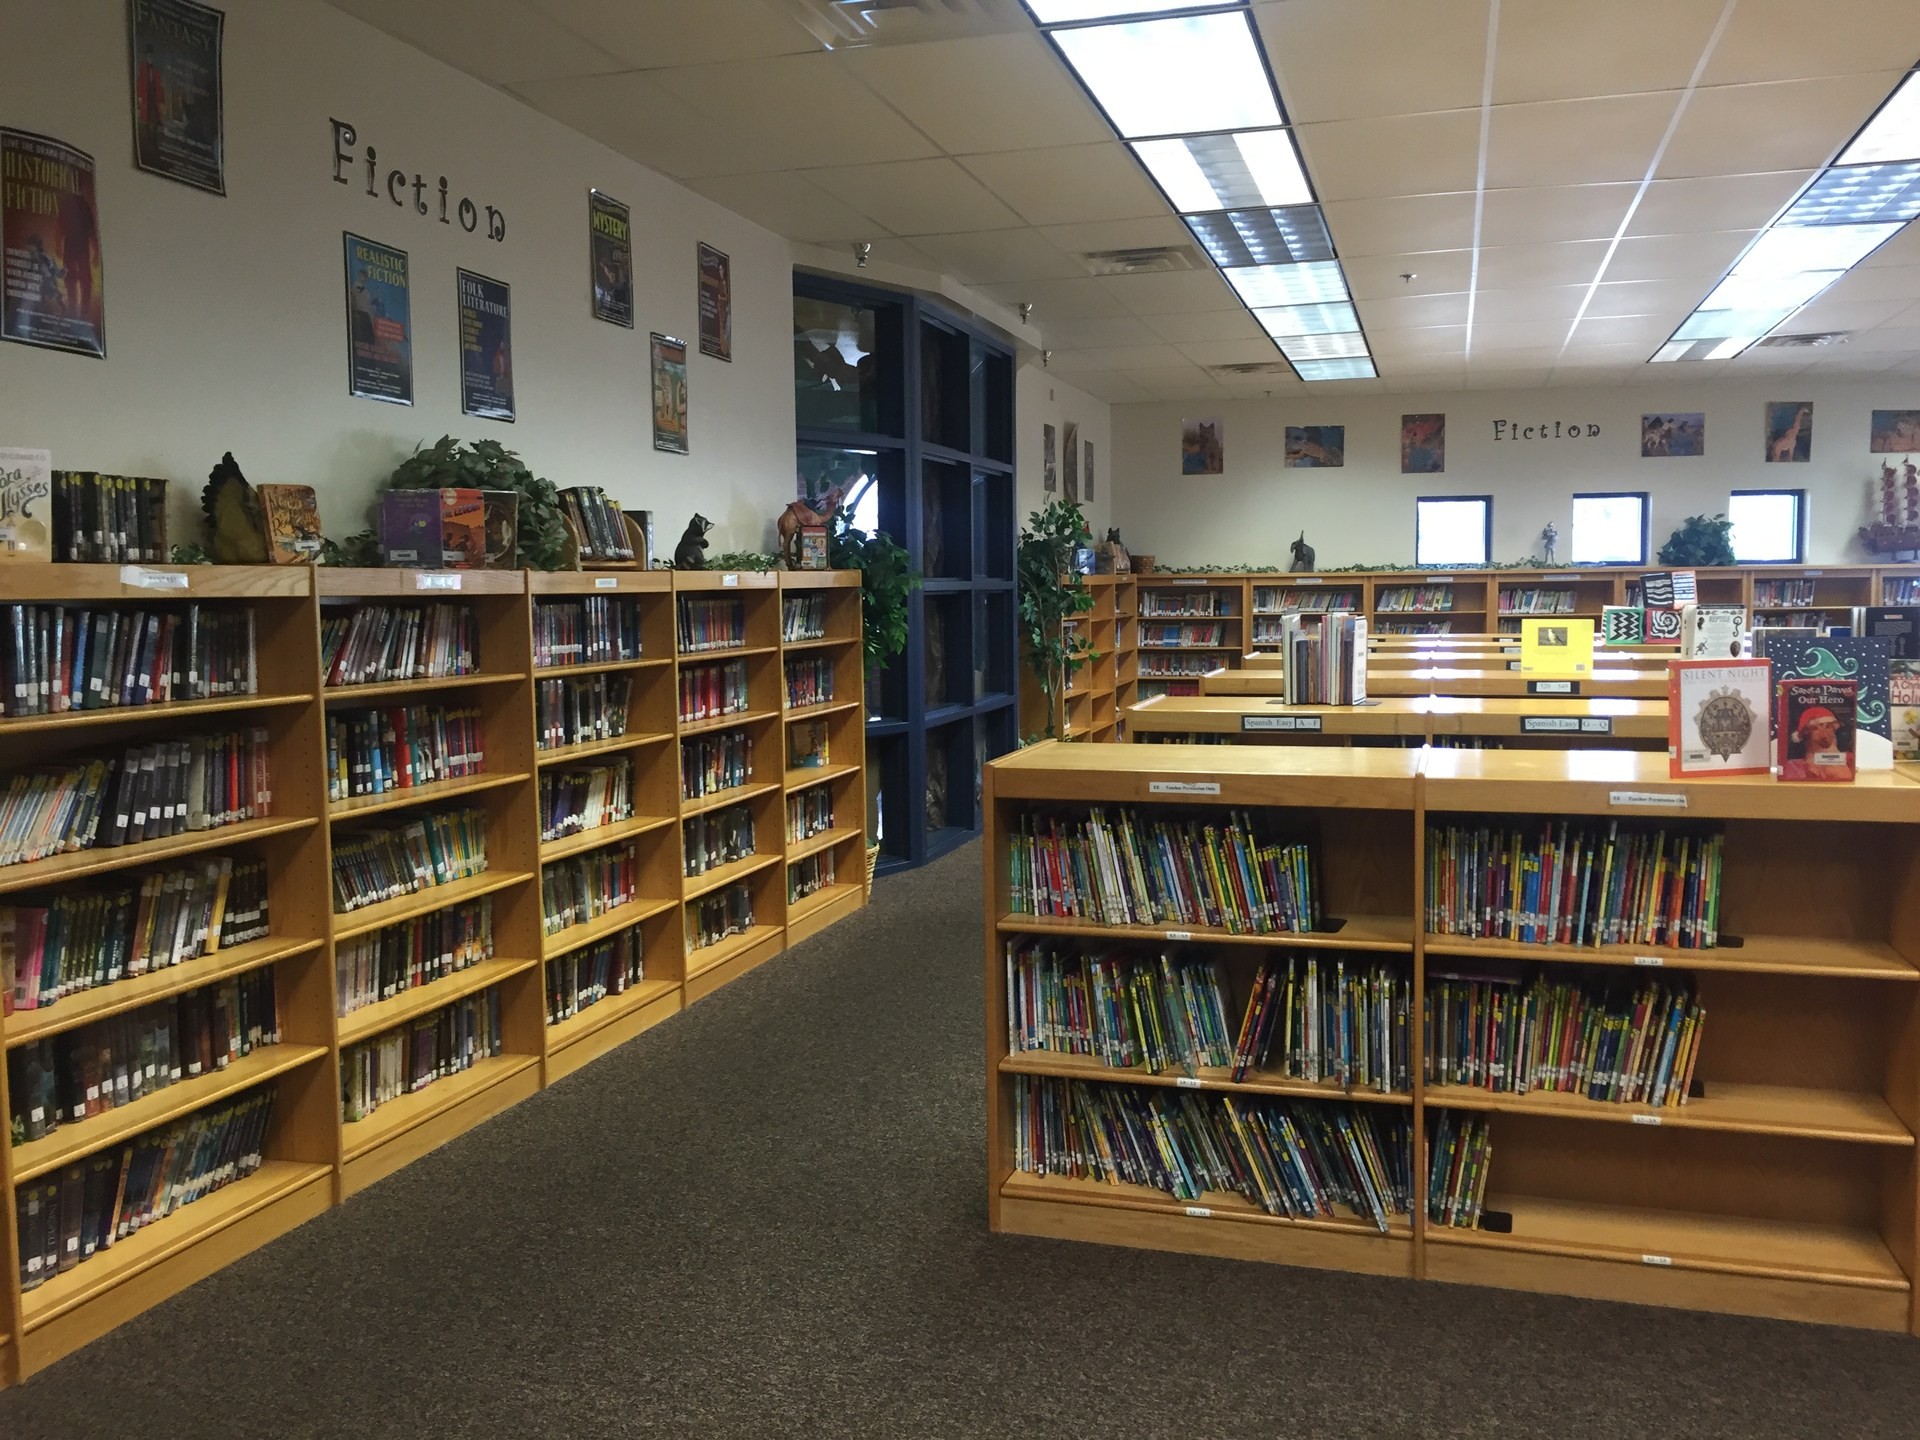 Picture of books on library shelves